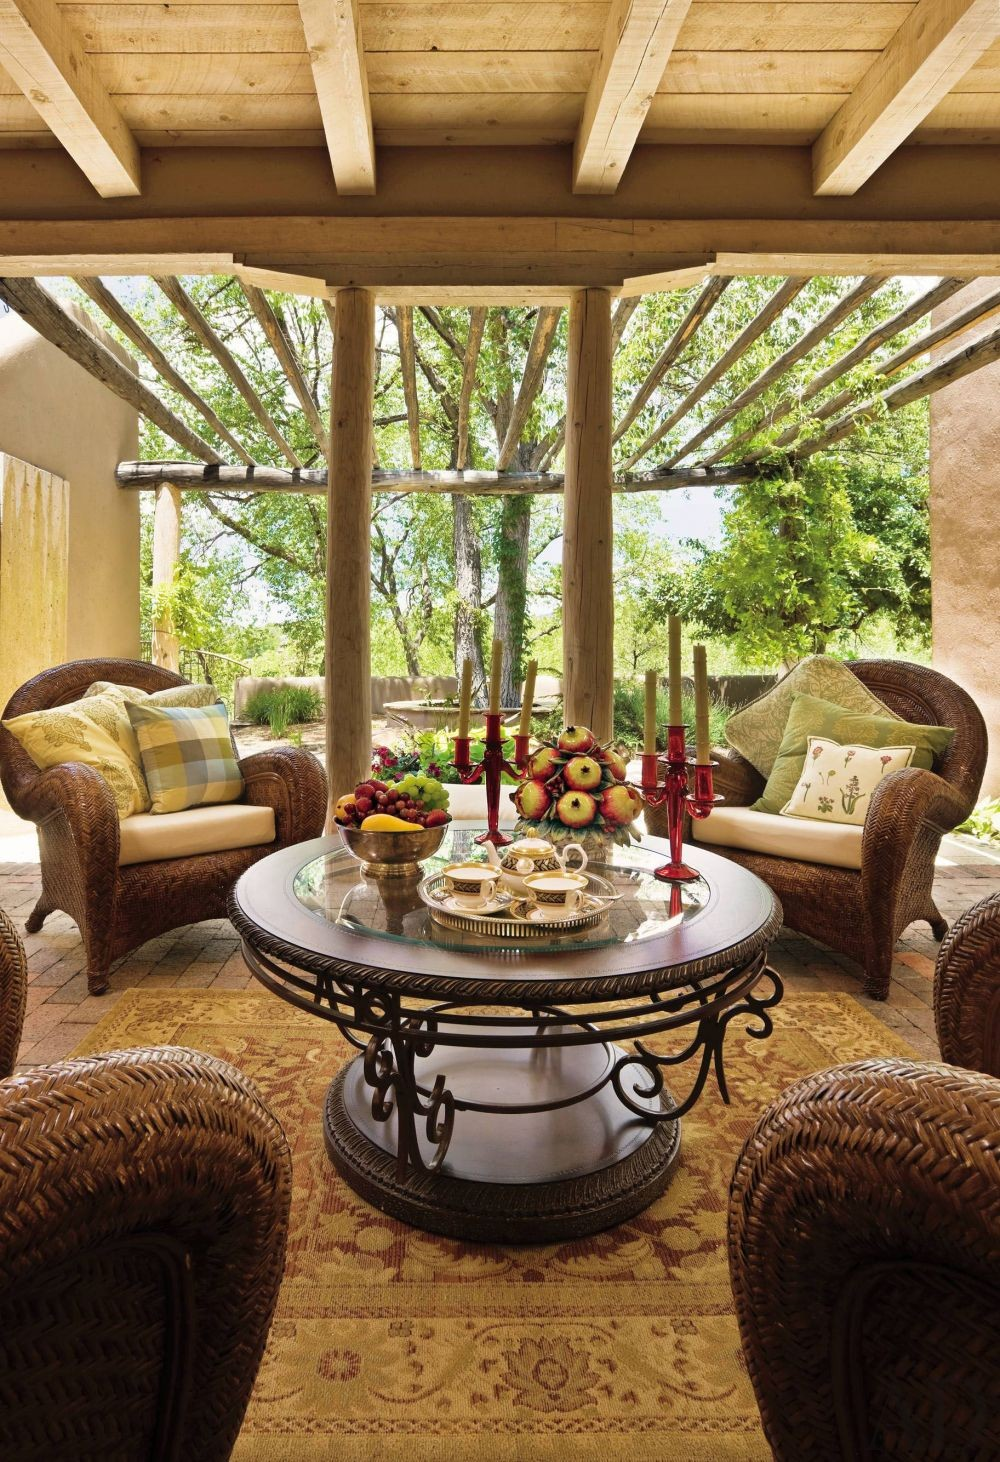 Rustic outdoor space by rose aiello by architectural for Santa fe decorations home